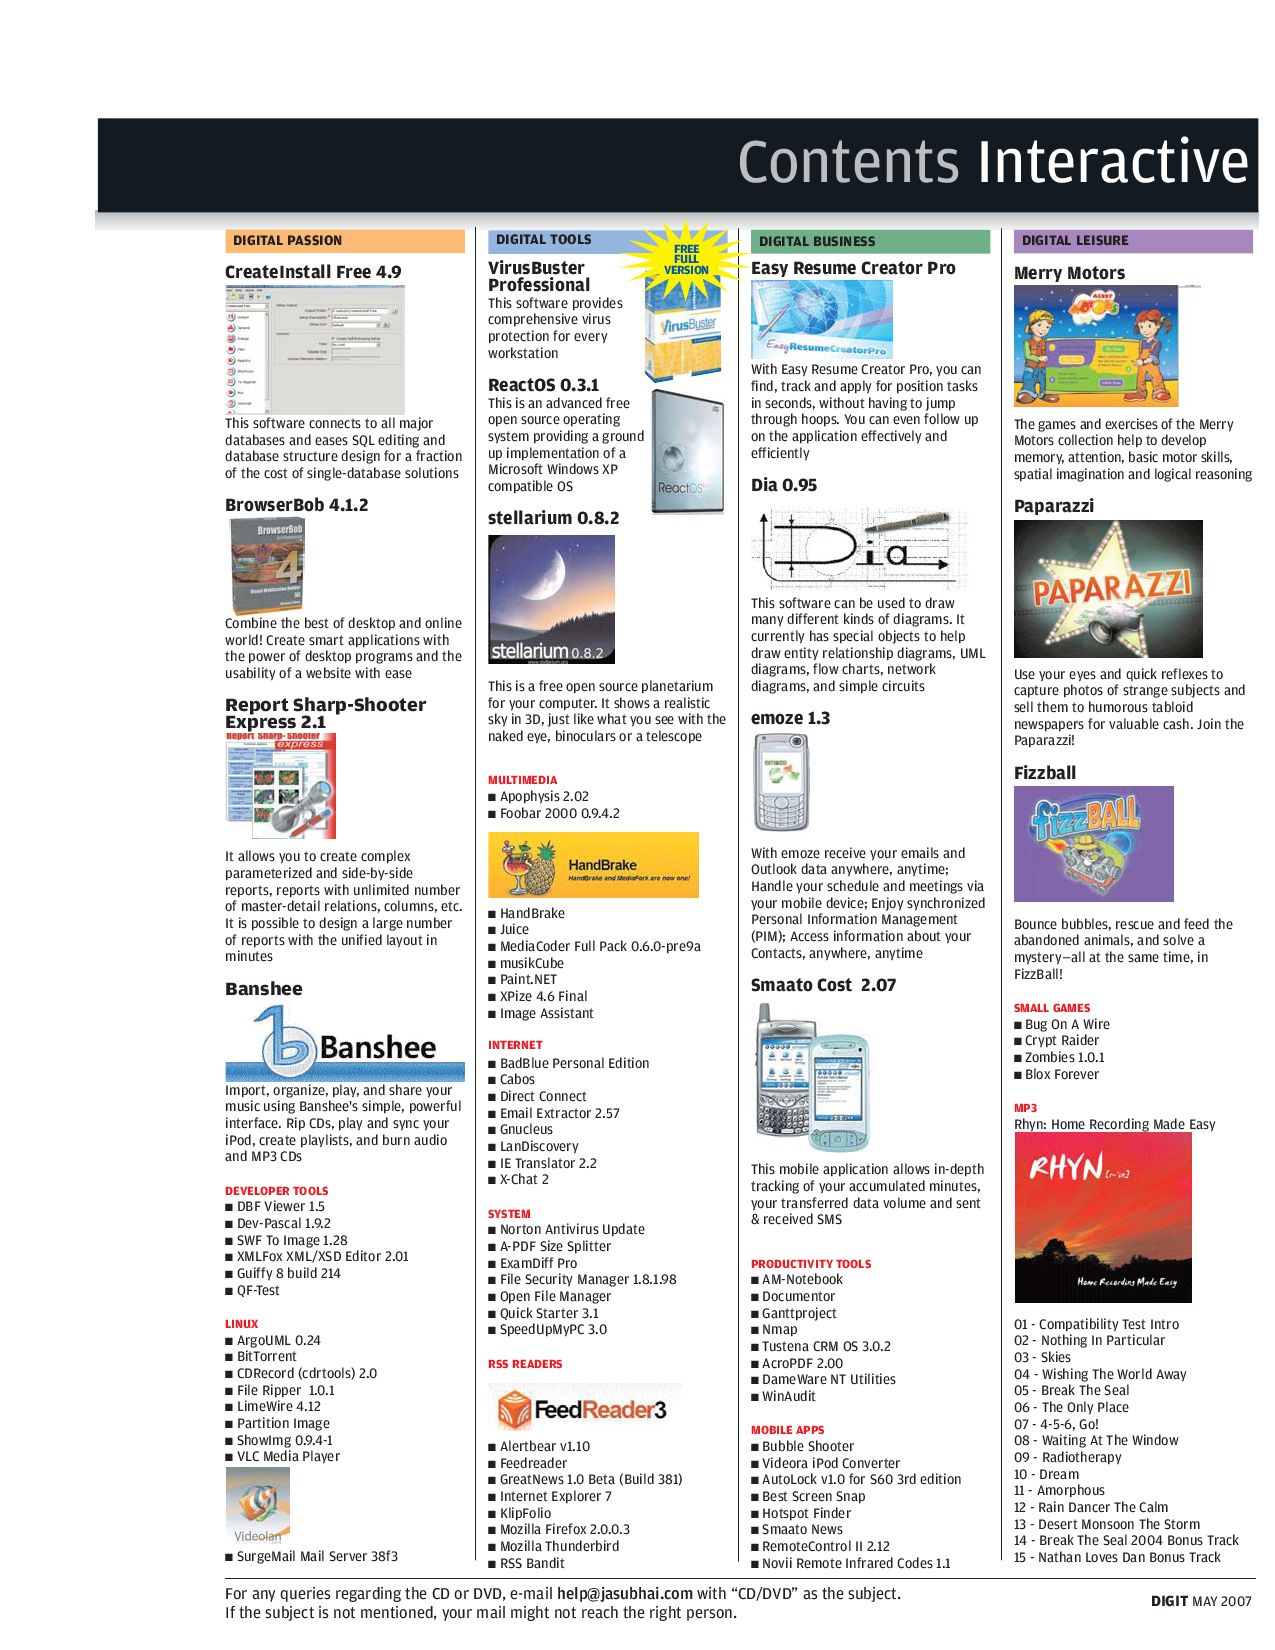 Contents_Interactive_CD_May_07 by Melwin Abraham - issuu